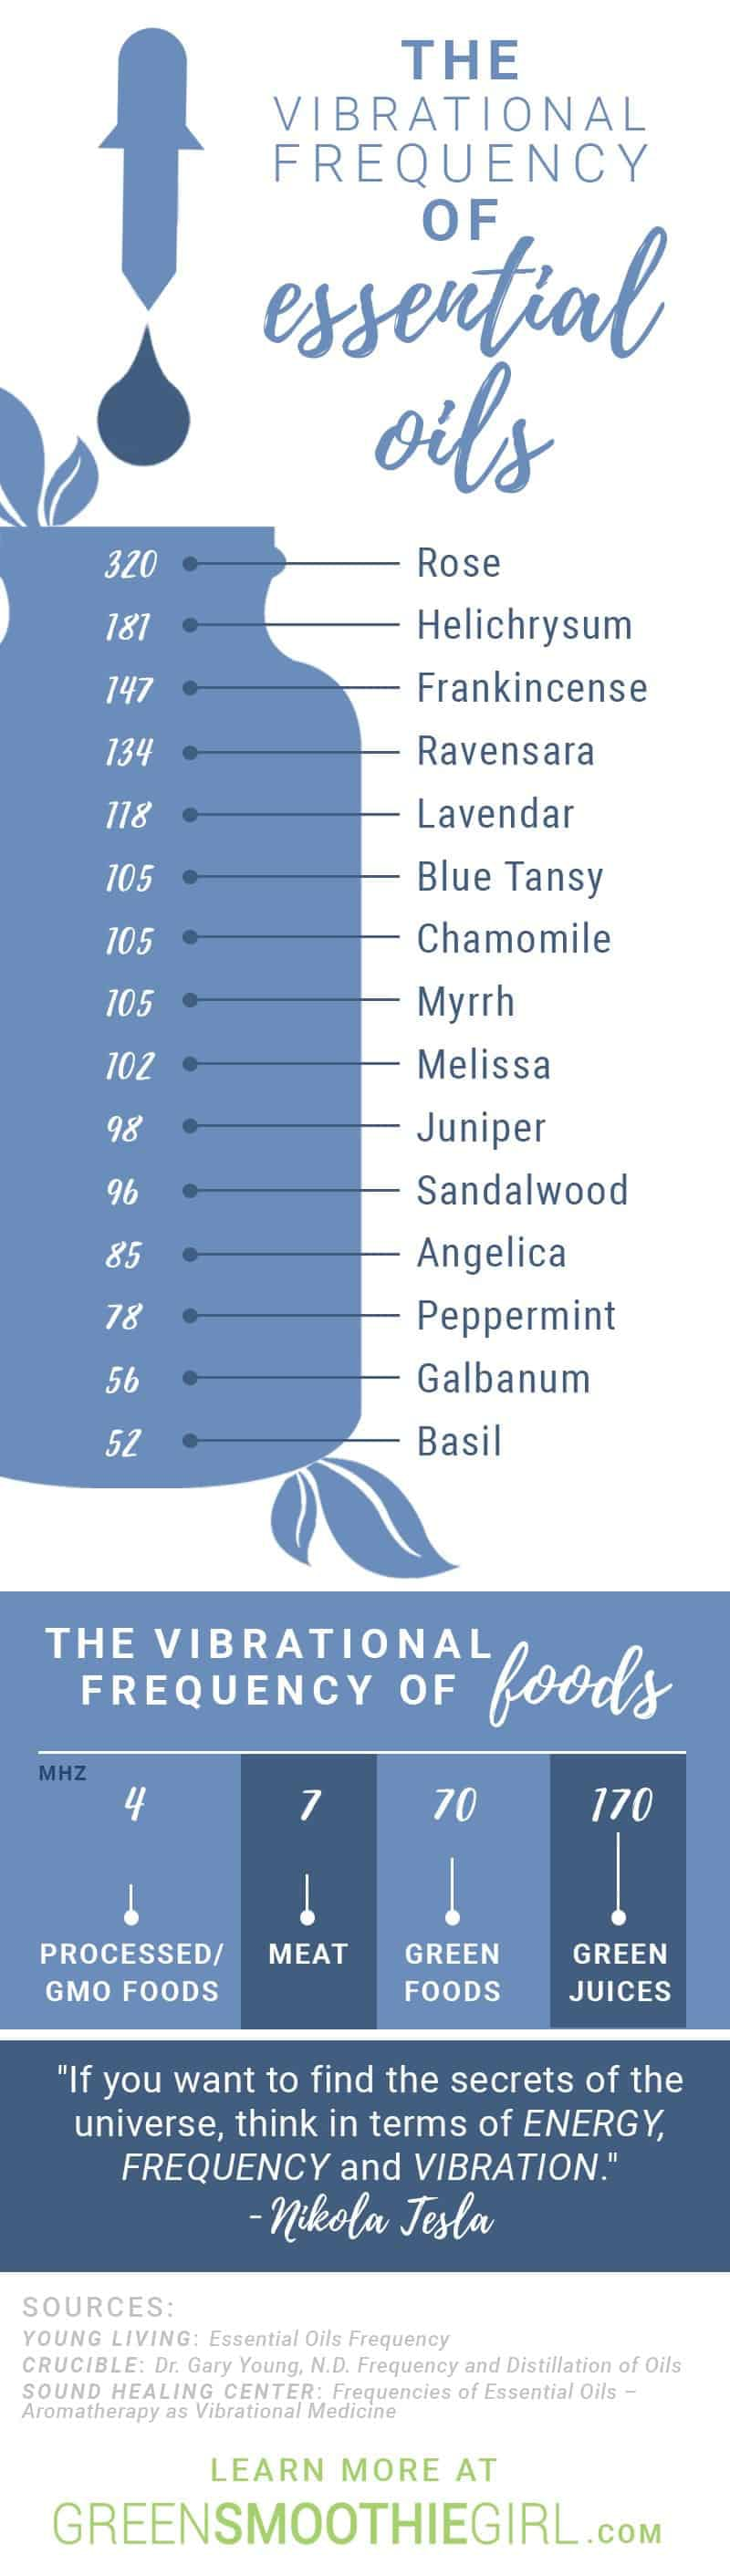 The Vibrational Frequency of Essential Oils | An Overview of the Vibrational Frequency of Essential Oils